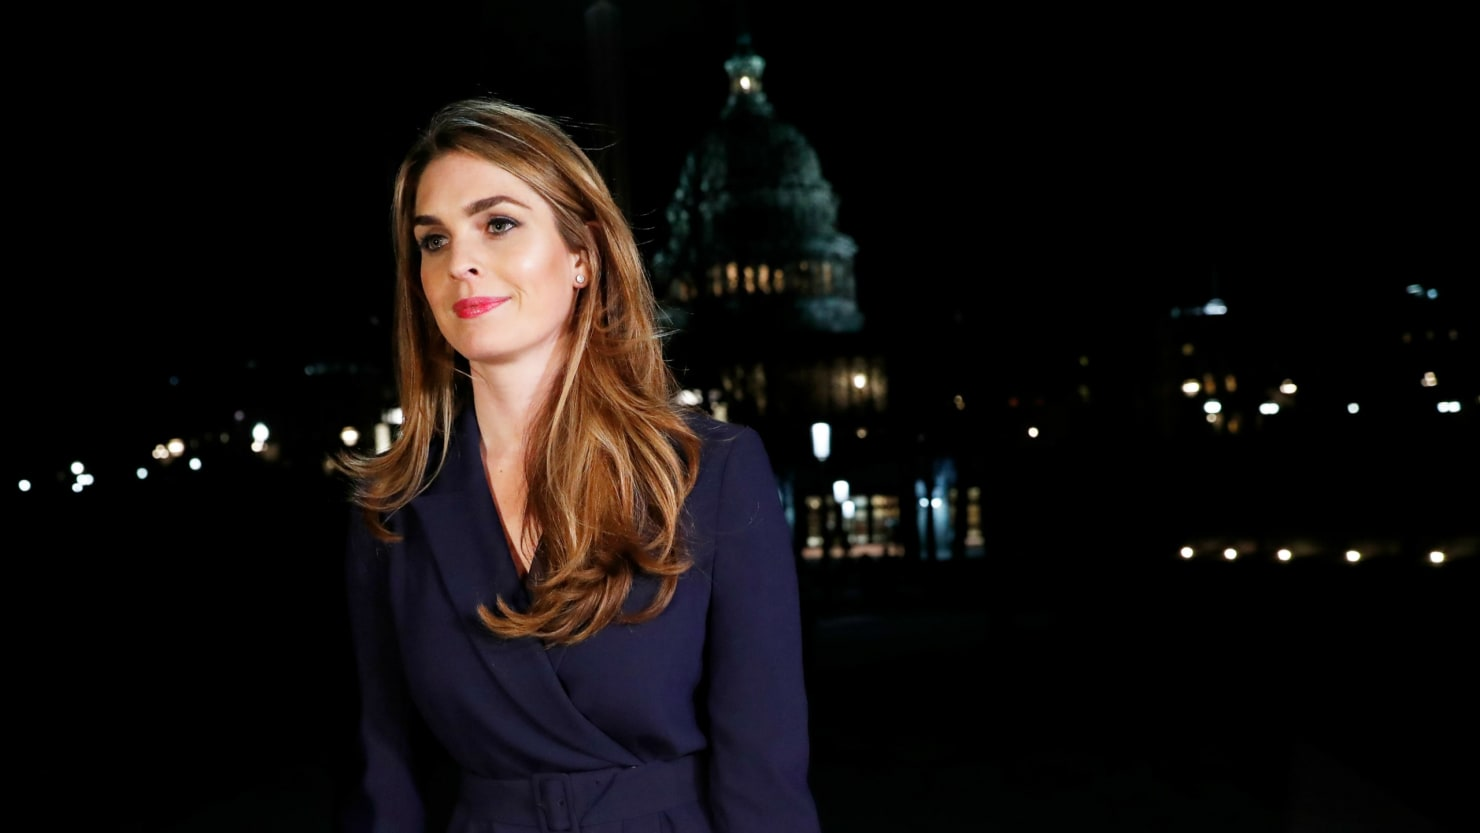 Hope Hicks Says She's Resigning From White House1480 x 833